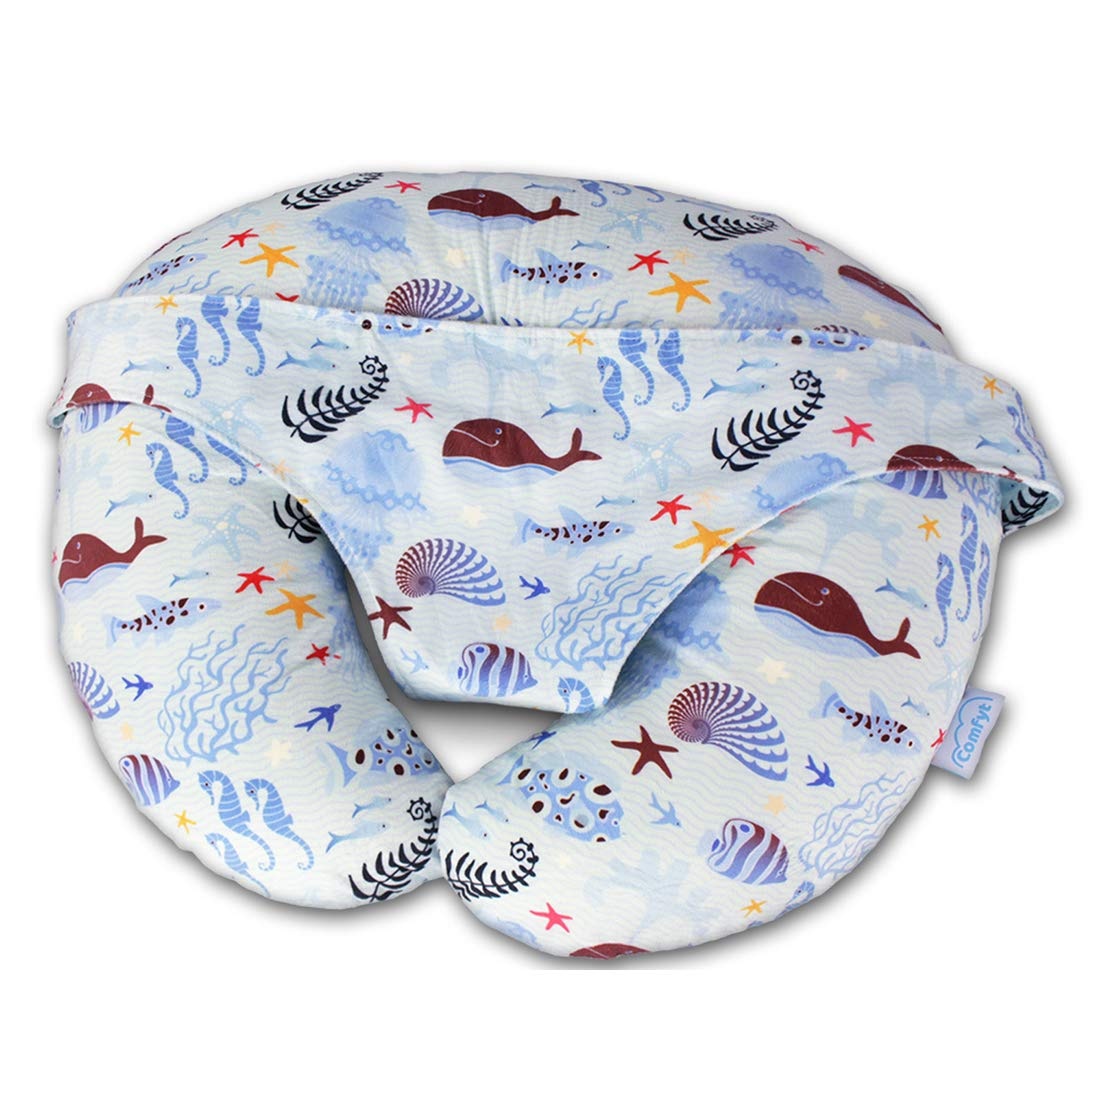 Nursing Pillow Multifunctional Baby Lounger Supporting Baby Best Breastfeeding Pillow and Positioner for Mom's Baby Pillow by Comfyt Nursing Pillow